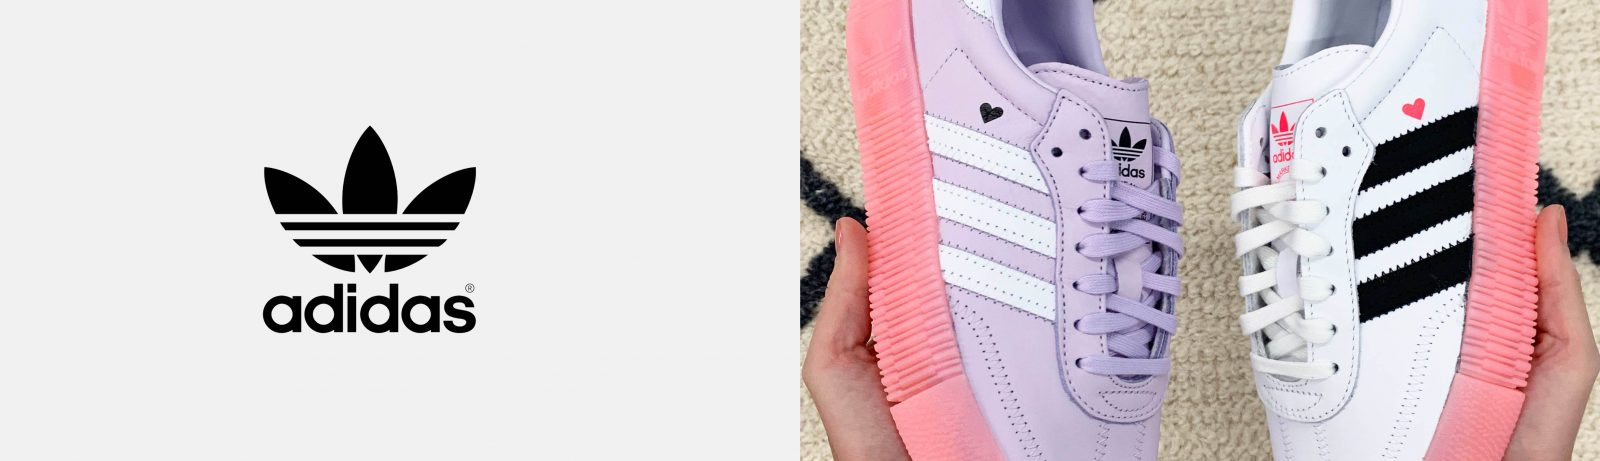 Women's Adidas Trainers